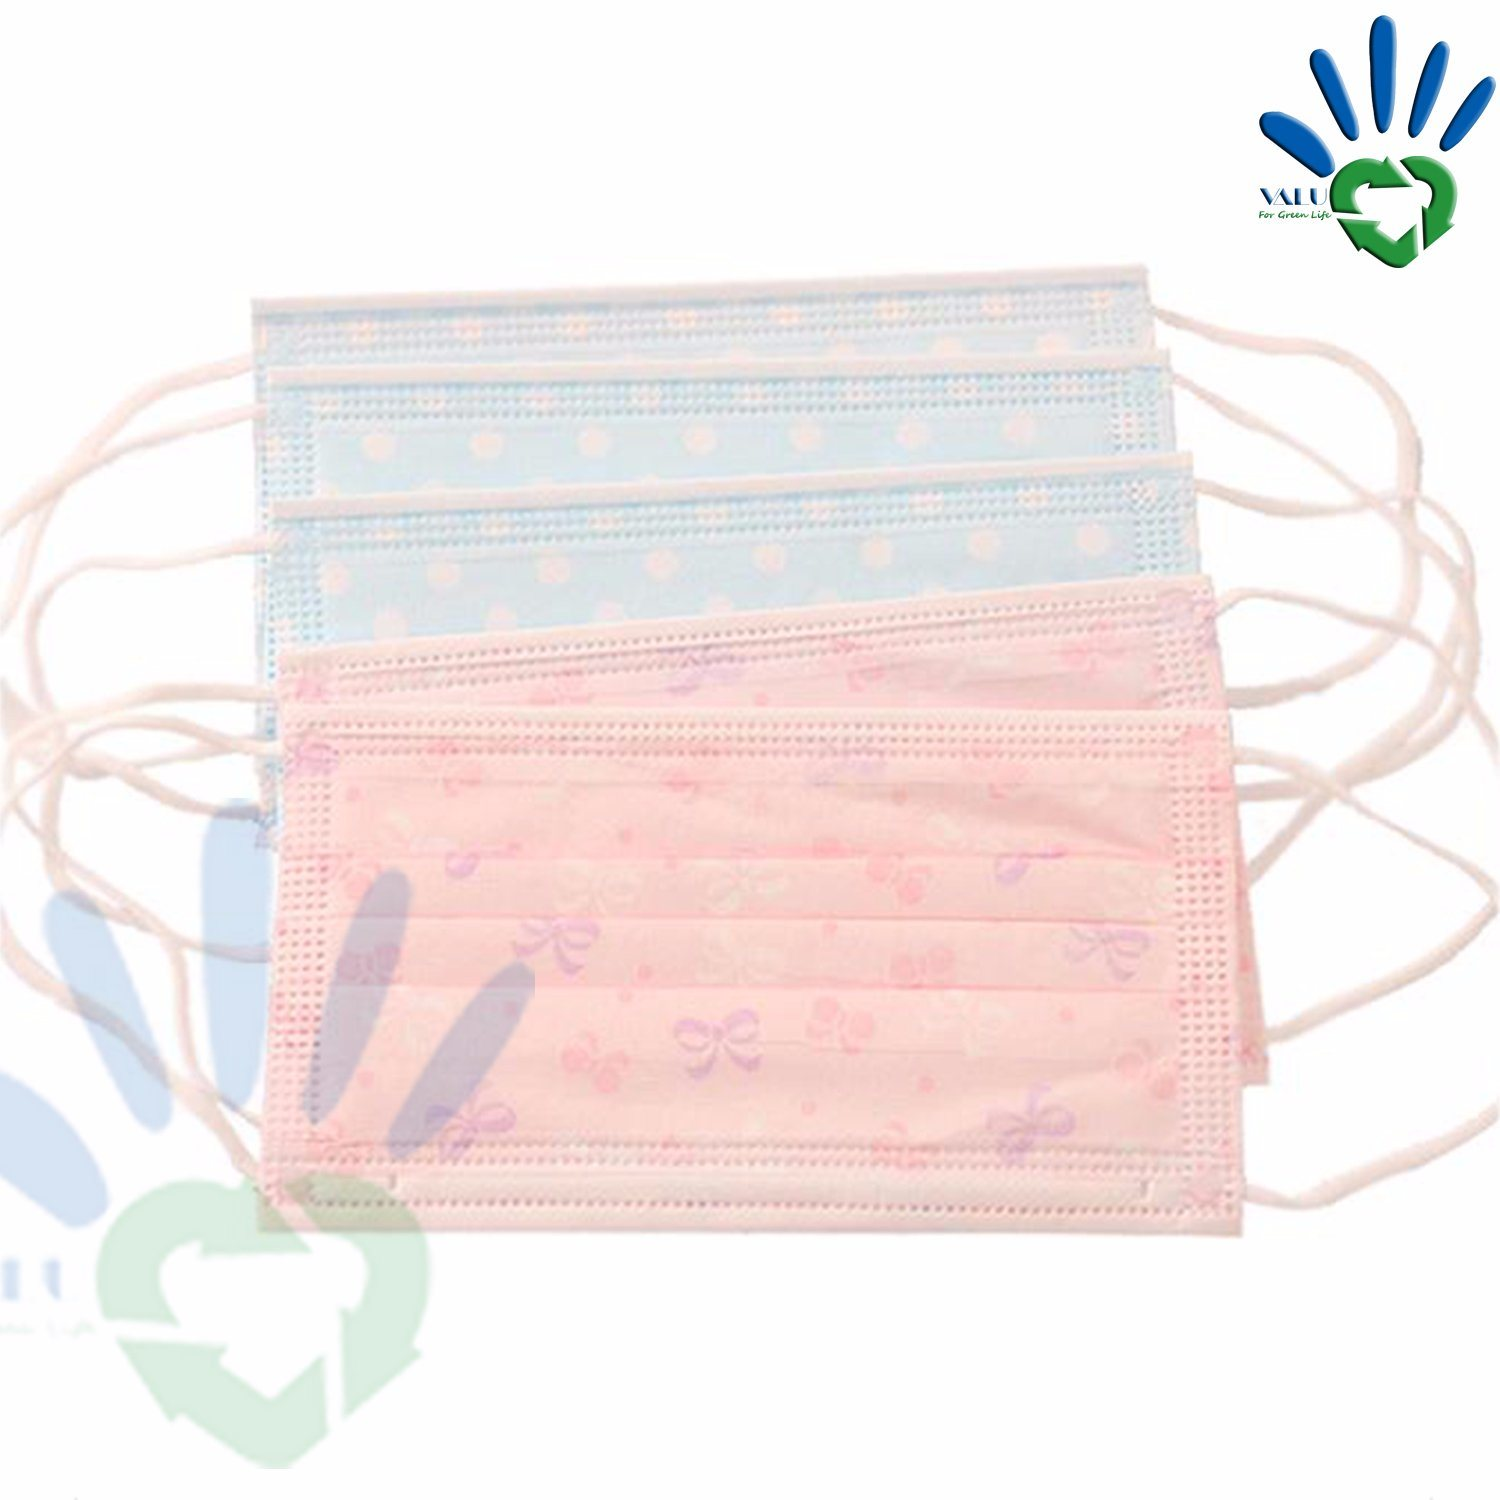 greenlife surgical mask